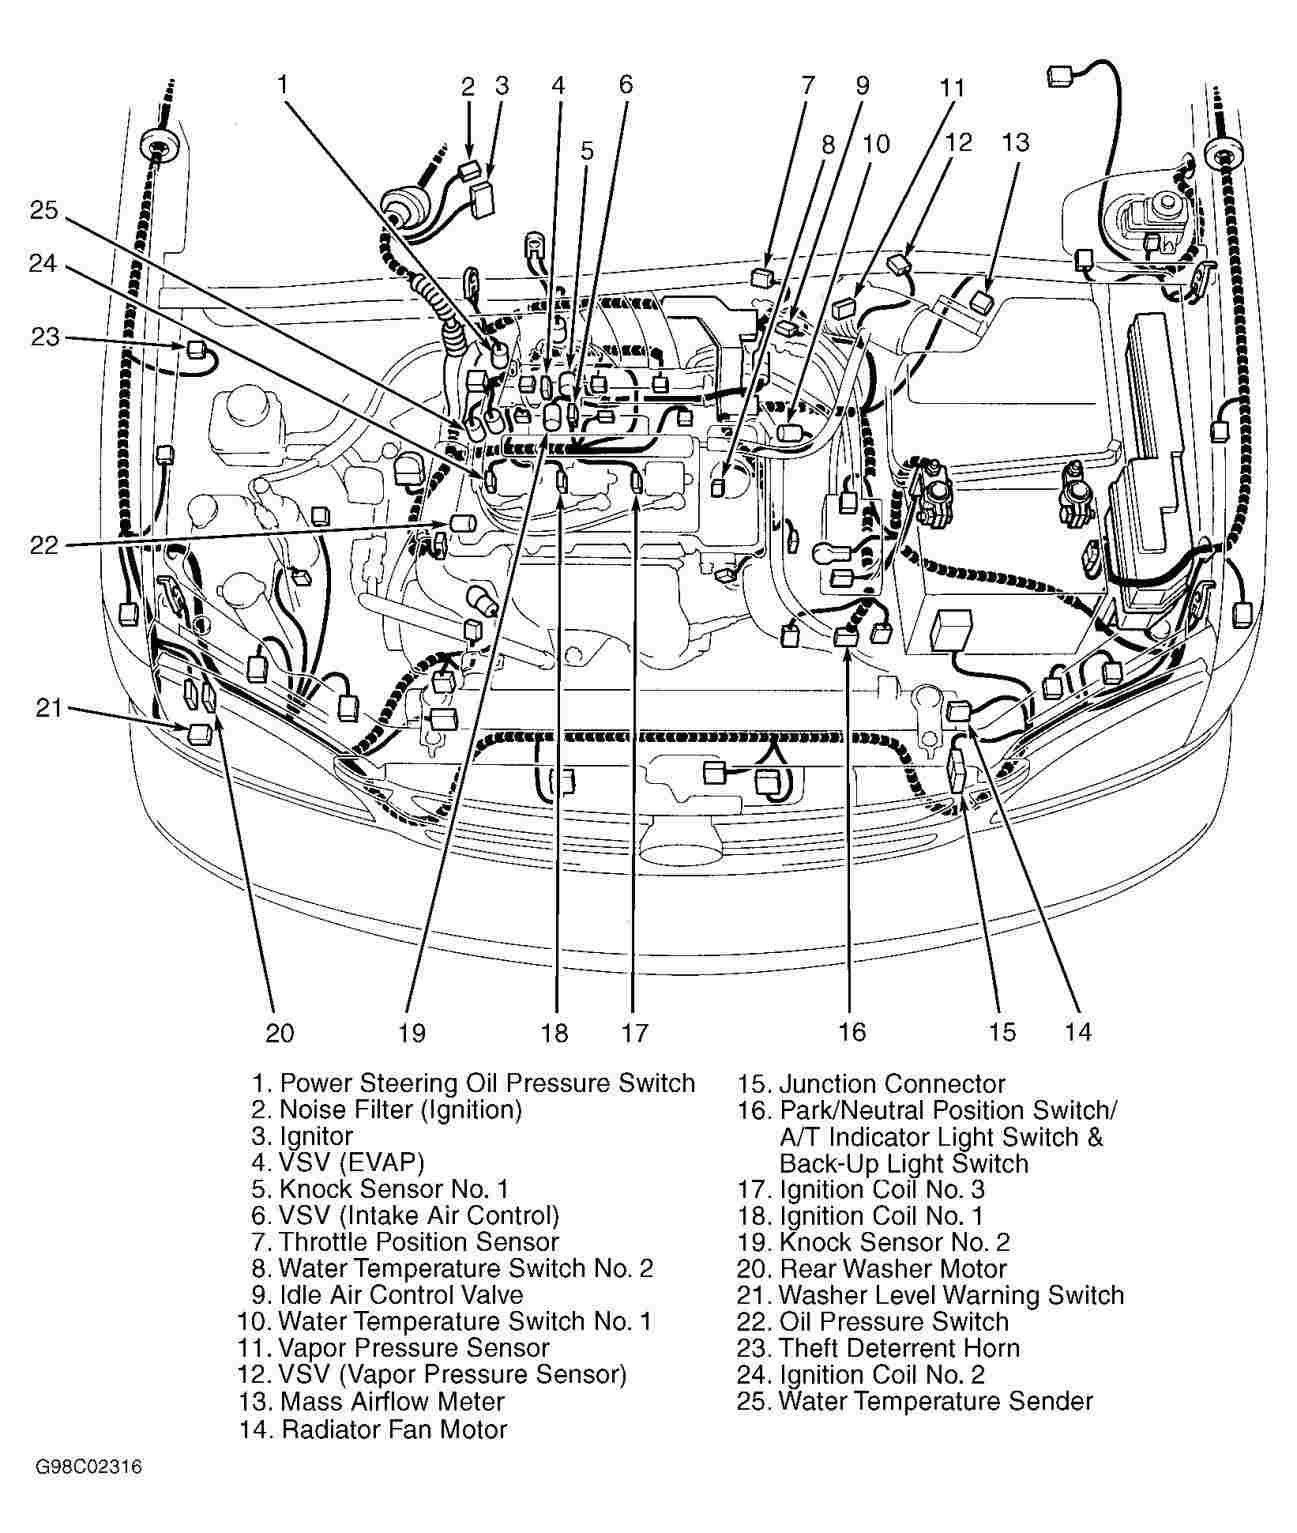 Beautiful Wiring Diagram Great Corolla Diagrams